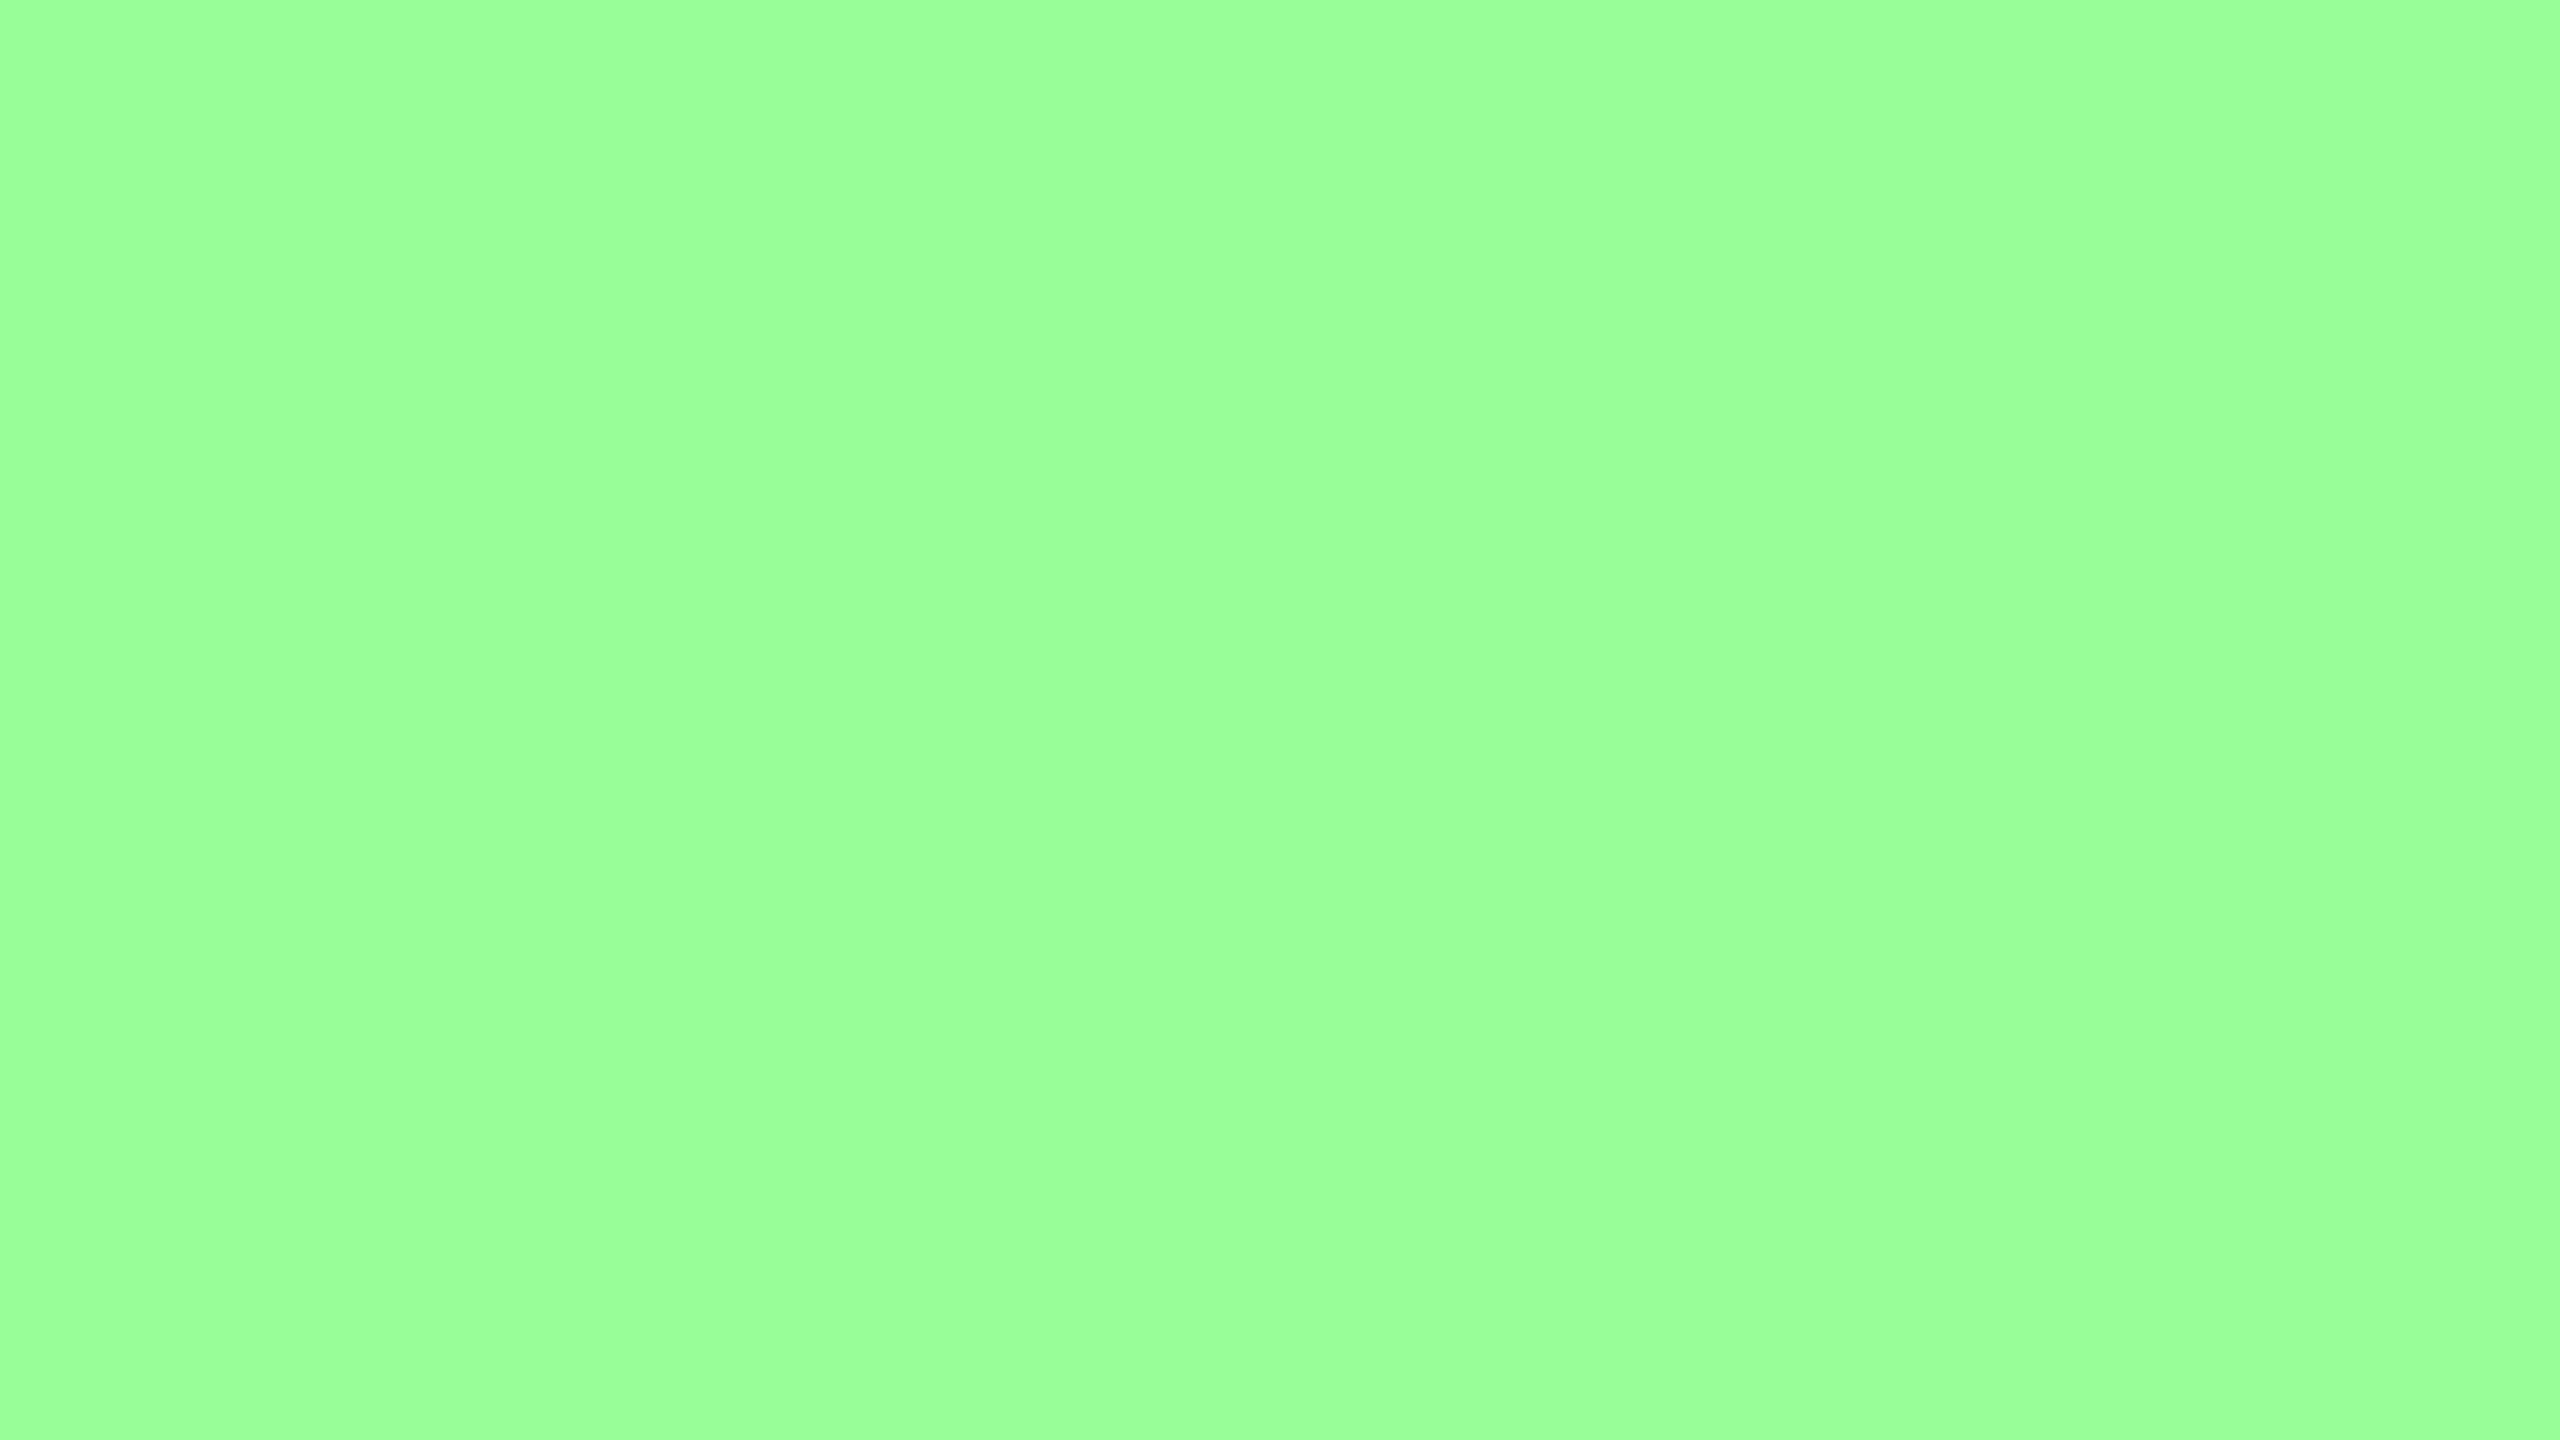 Green solid color background view and download the below background 2560x1440